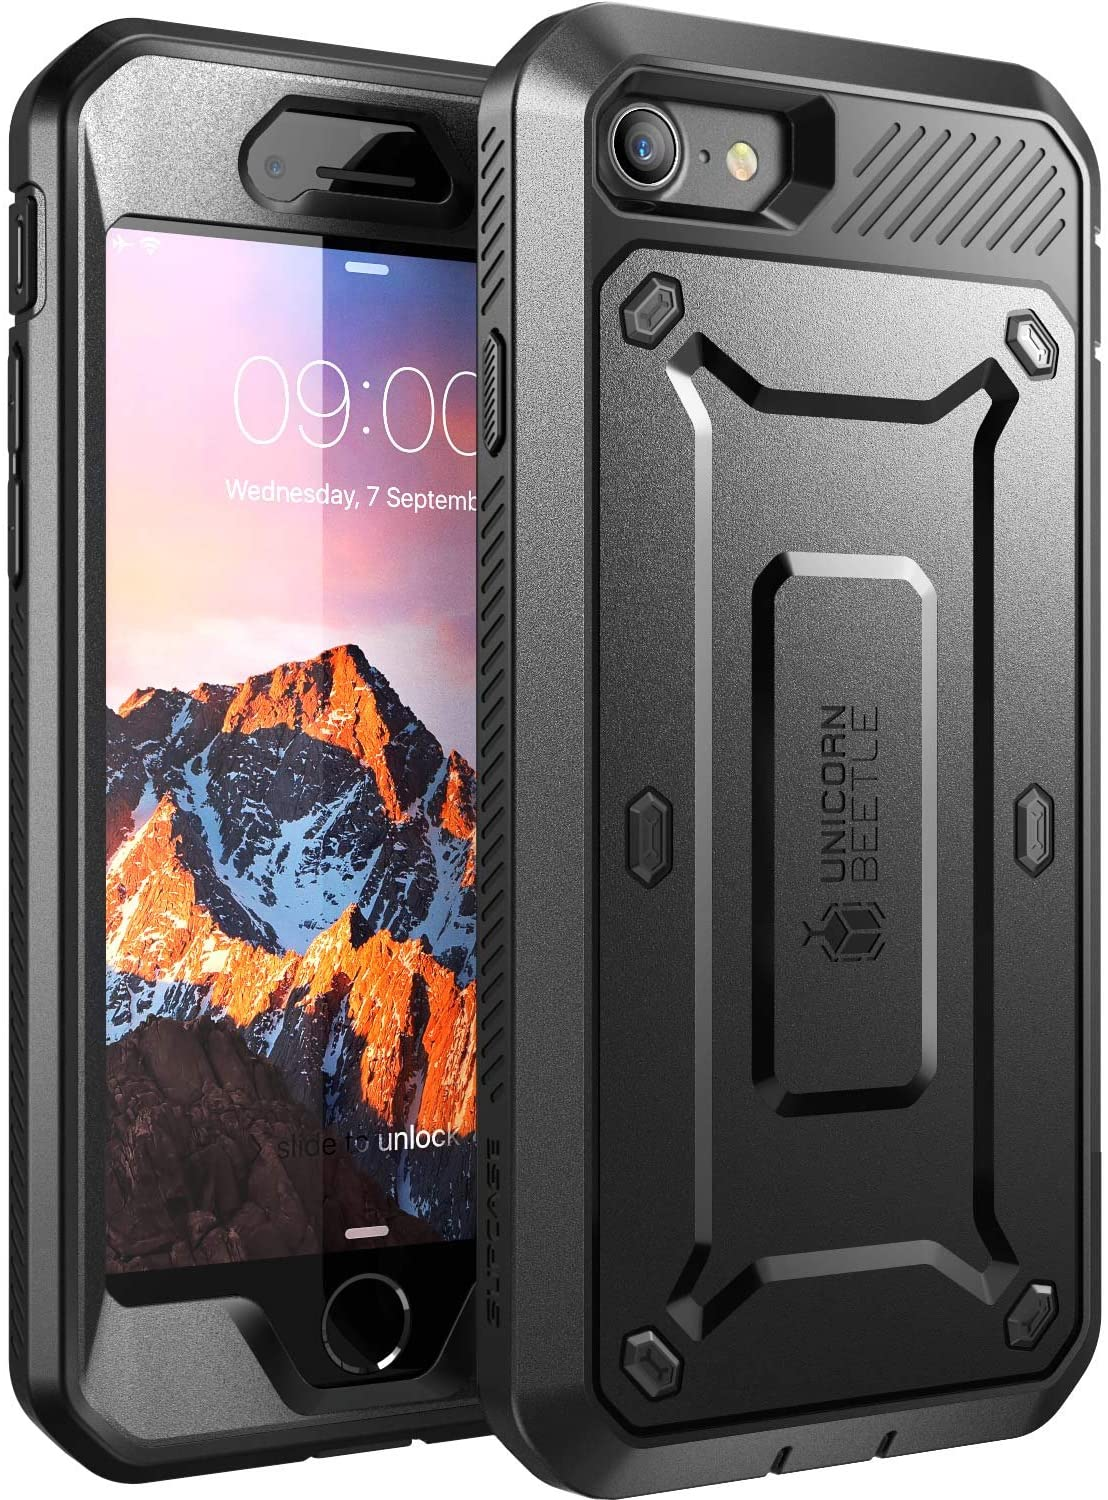 SupCase Unicorn Beetle Pro Series Case Designed for iPhone SE 2nd generation/iPhone 8 /iPhone 7, Full-body Rugged Holster Case with Built-in Screen Protector for Apple iPhone SE (2020 Release) (Black)